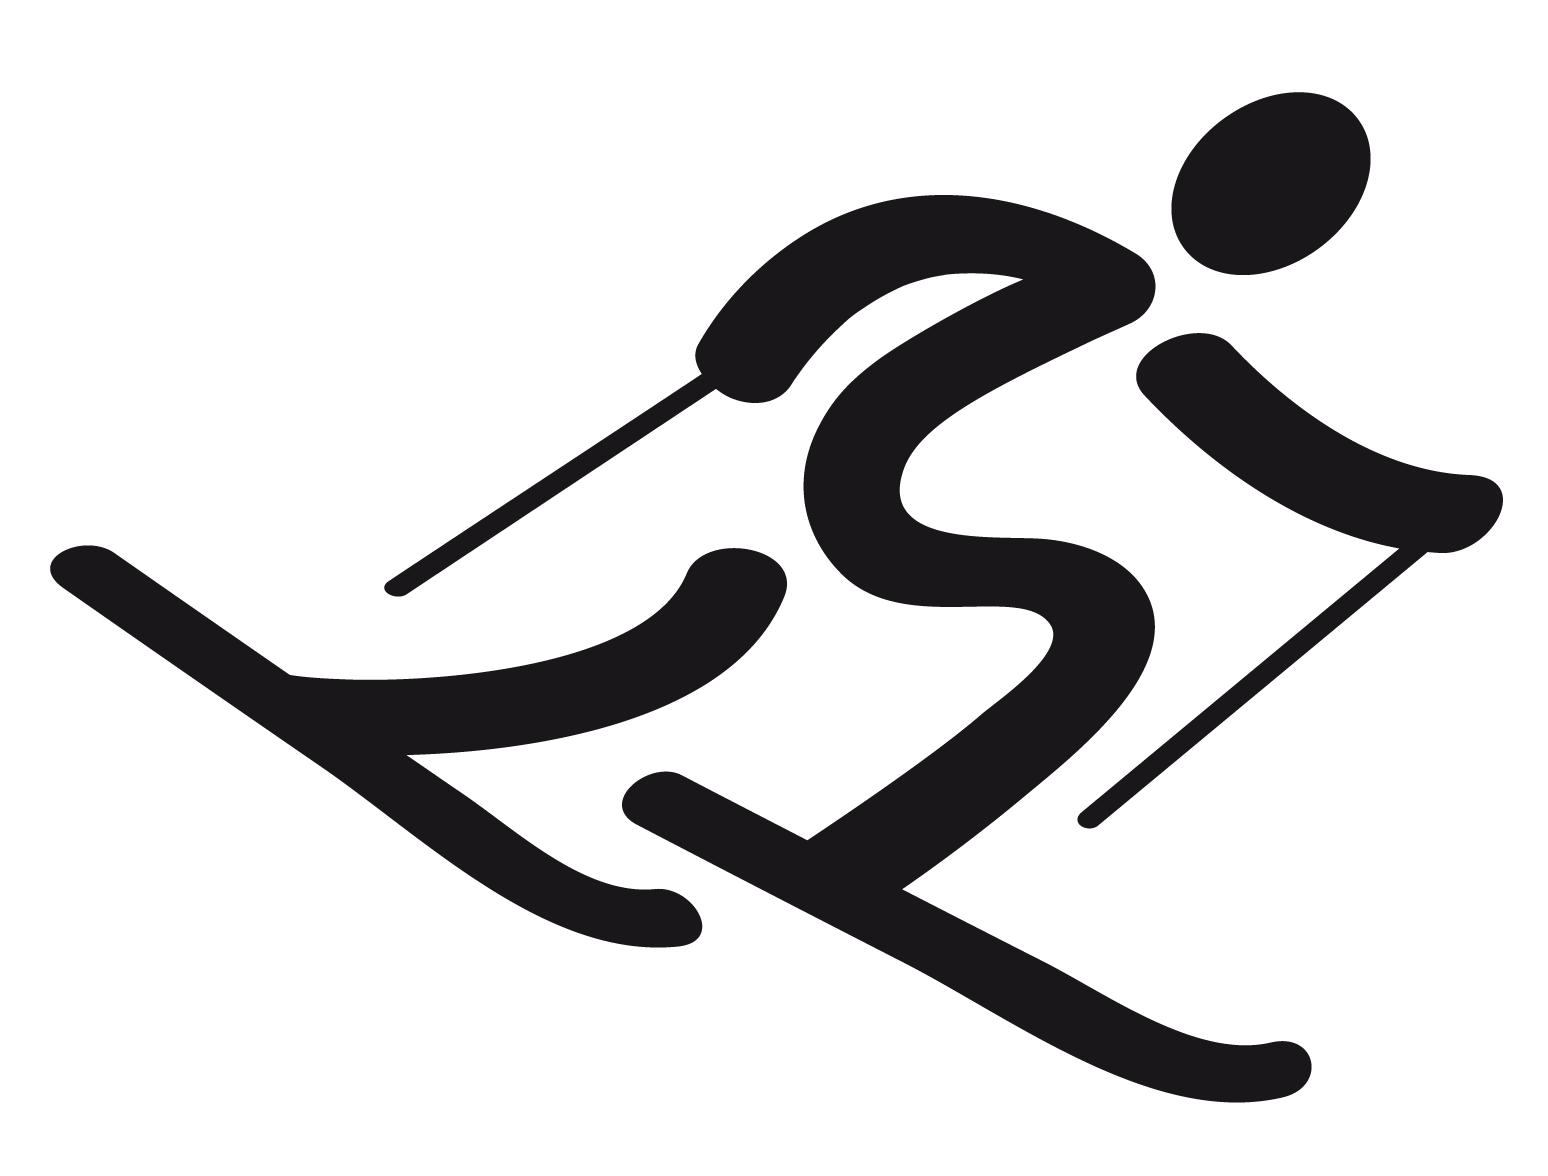 Free Skiing Transparent Images Download Free Clip Art